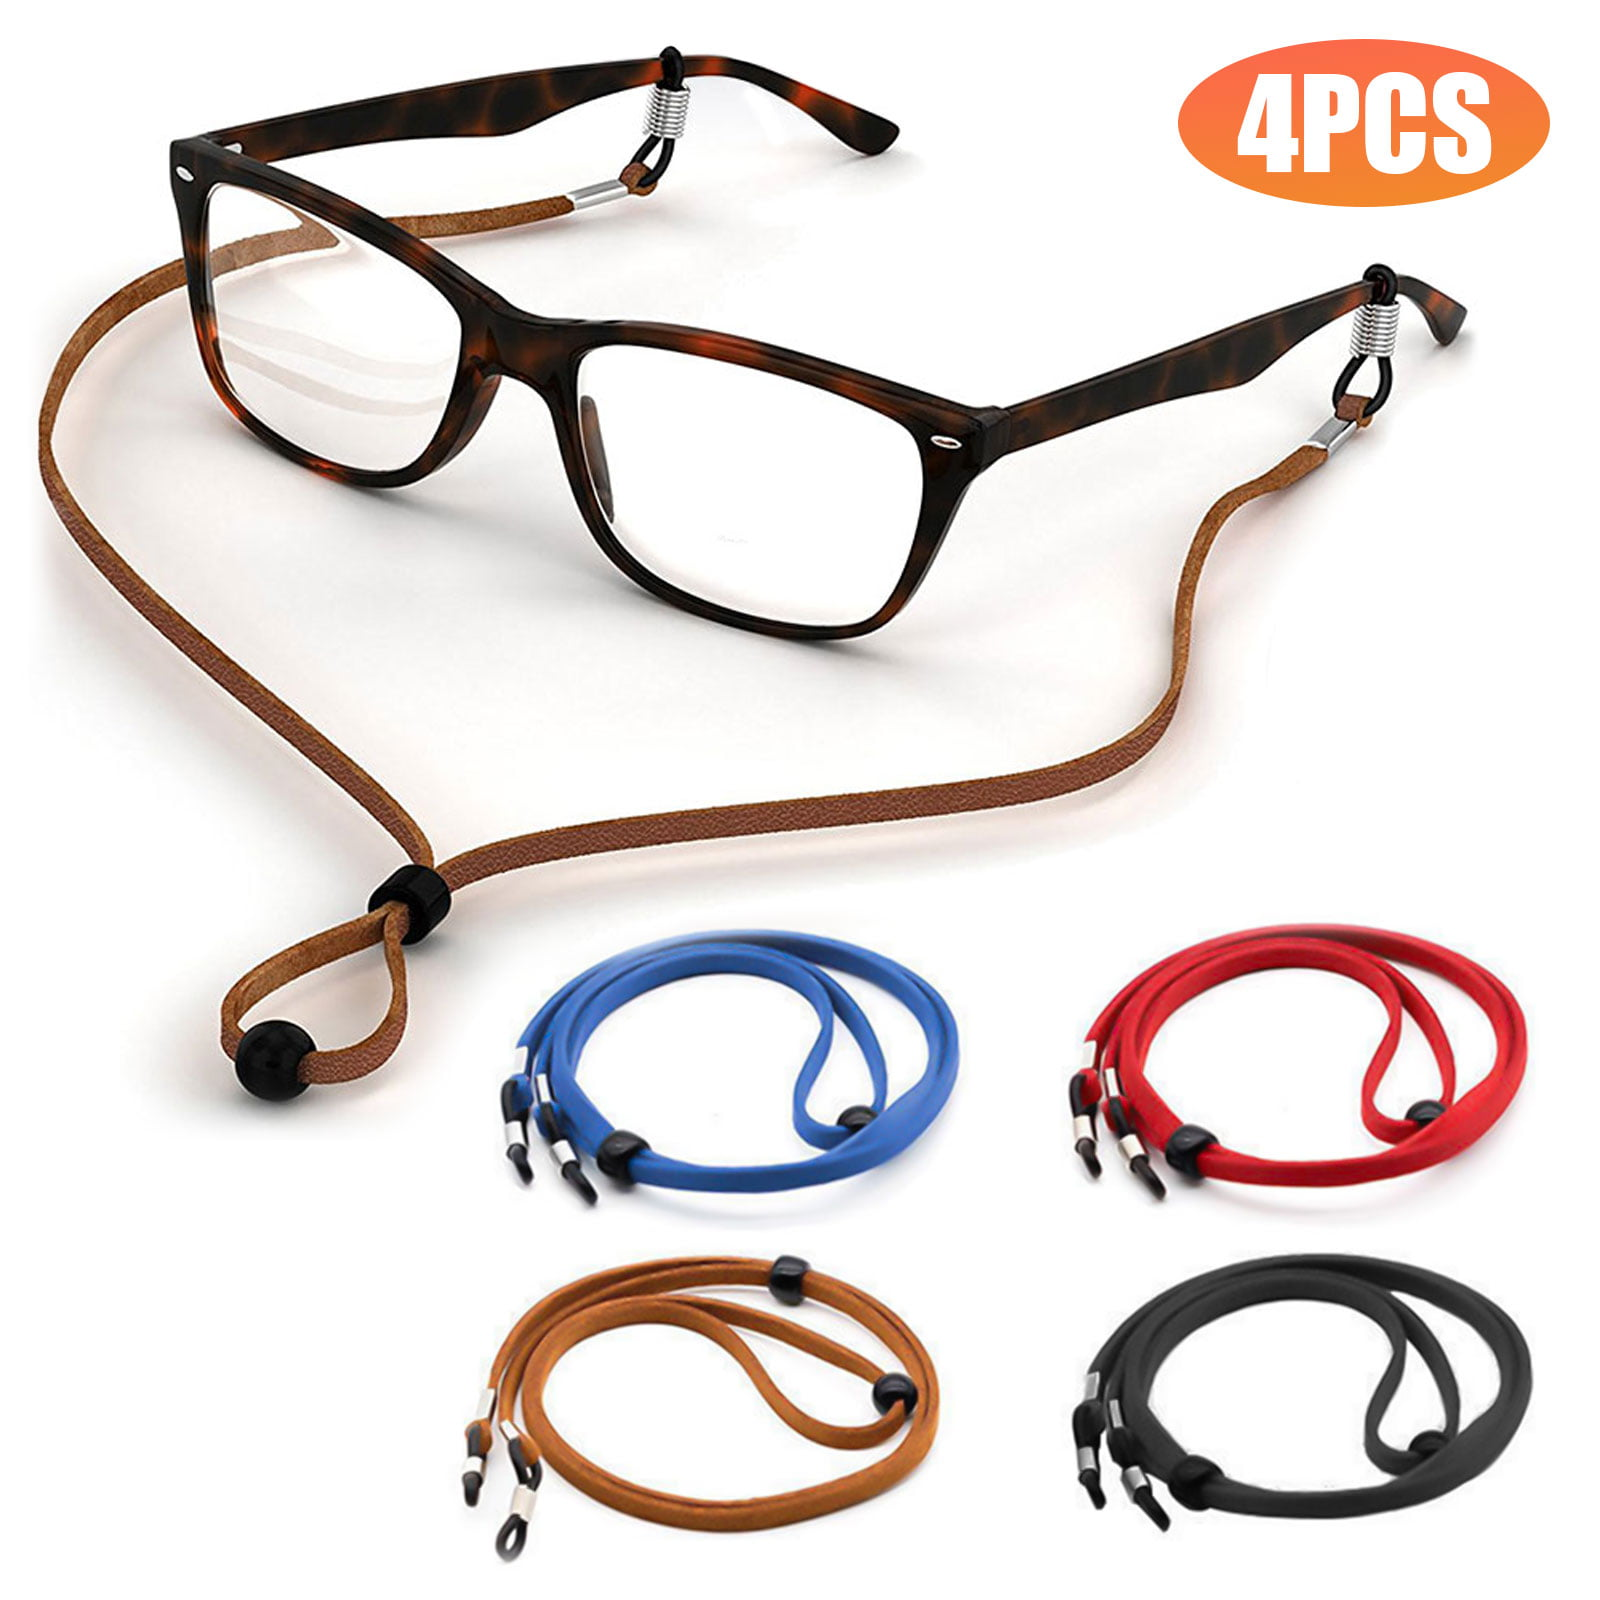 Acrylic Chain Eyeglasses Chains Glasses Rope Sunglass Strap Neck Cord Adjustable